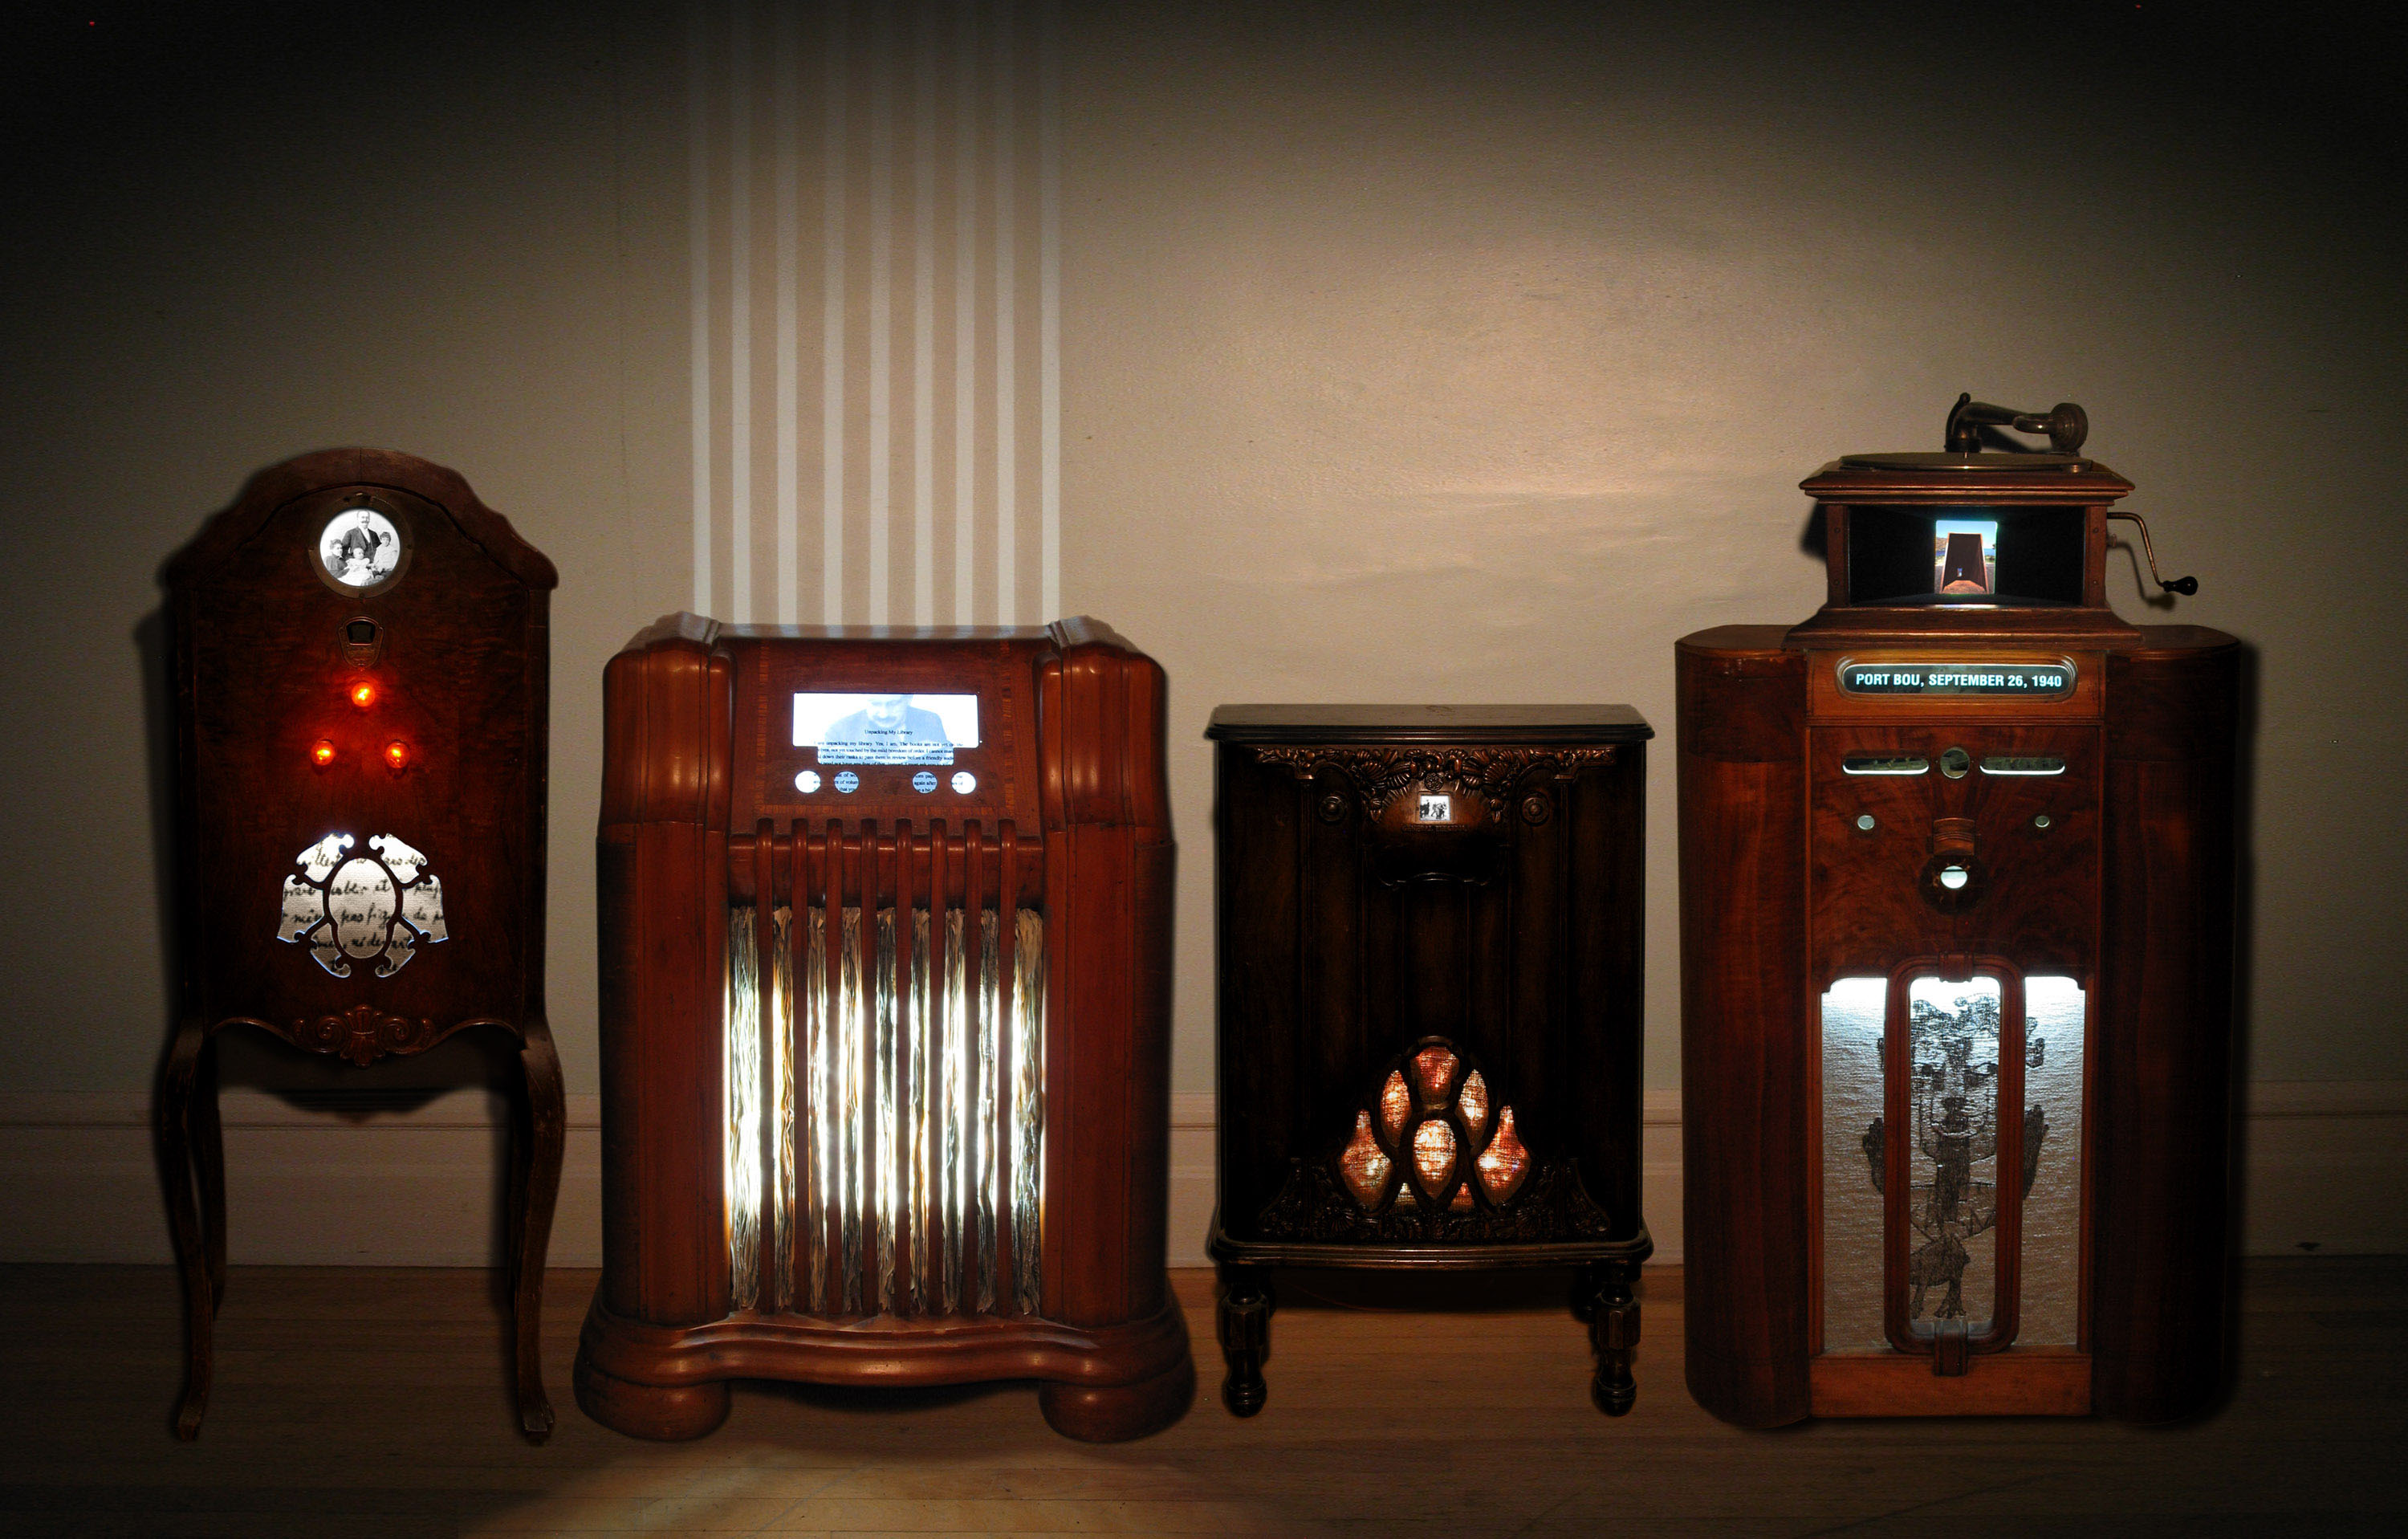 Walter: Old radios, videos, light structures, digital weavings, sound